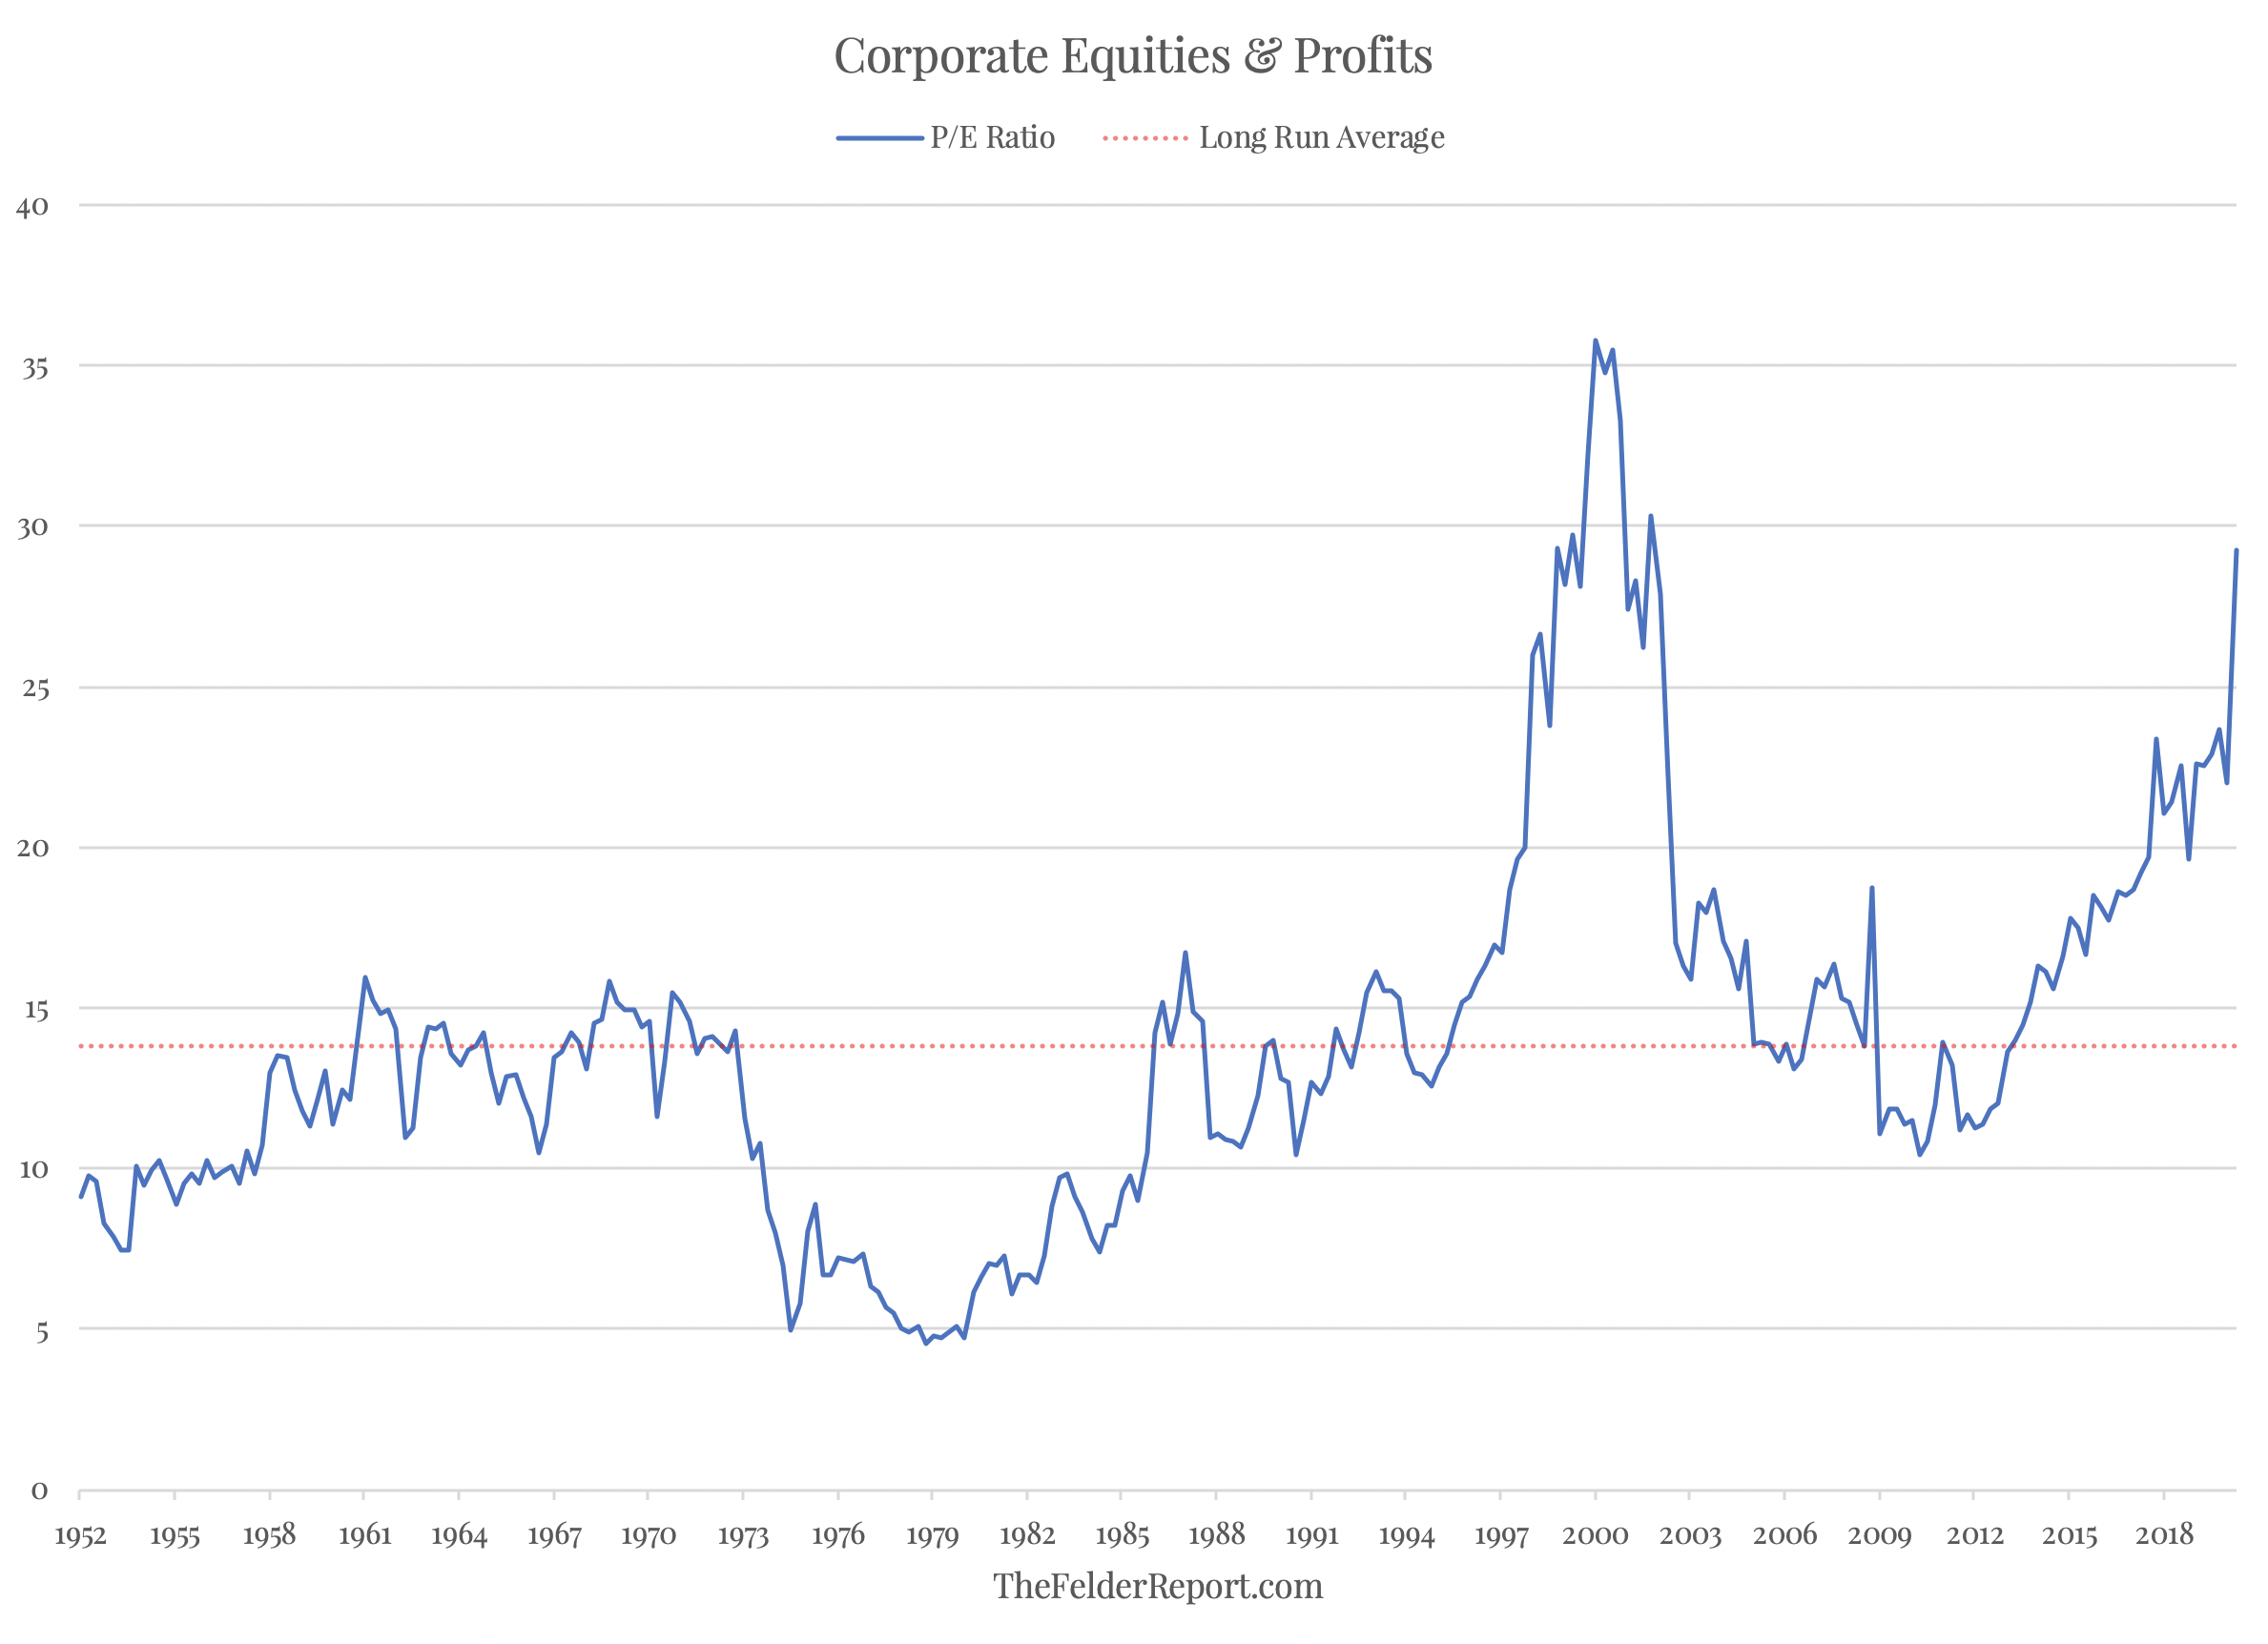 Corporate Equities and Profits: P/E Ratio